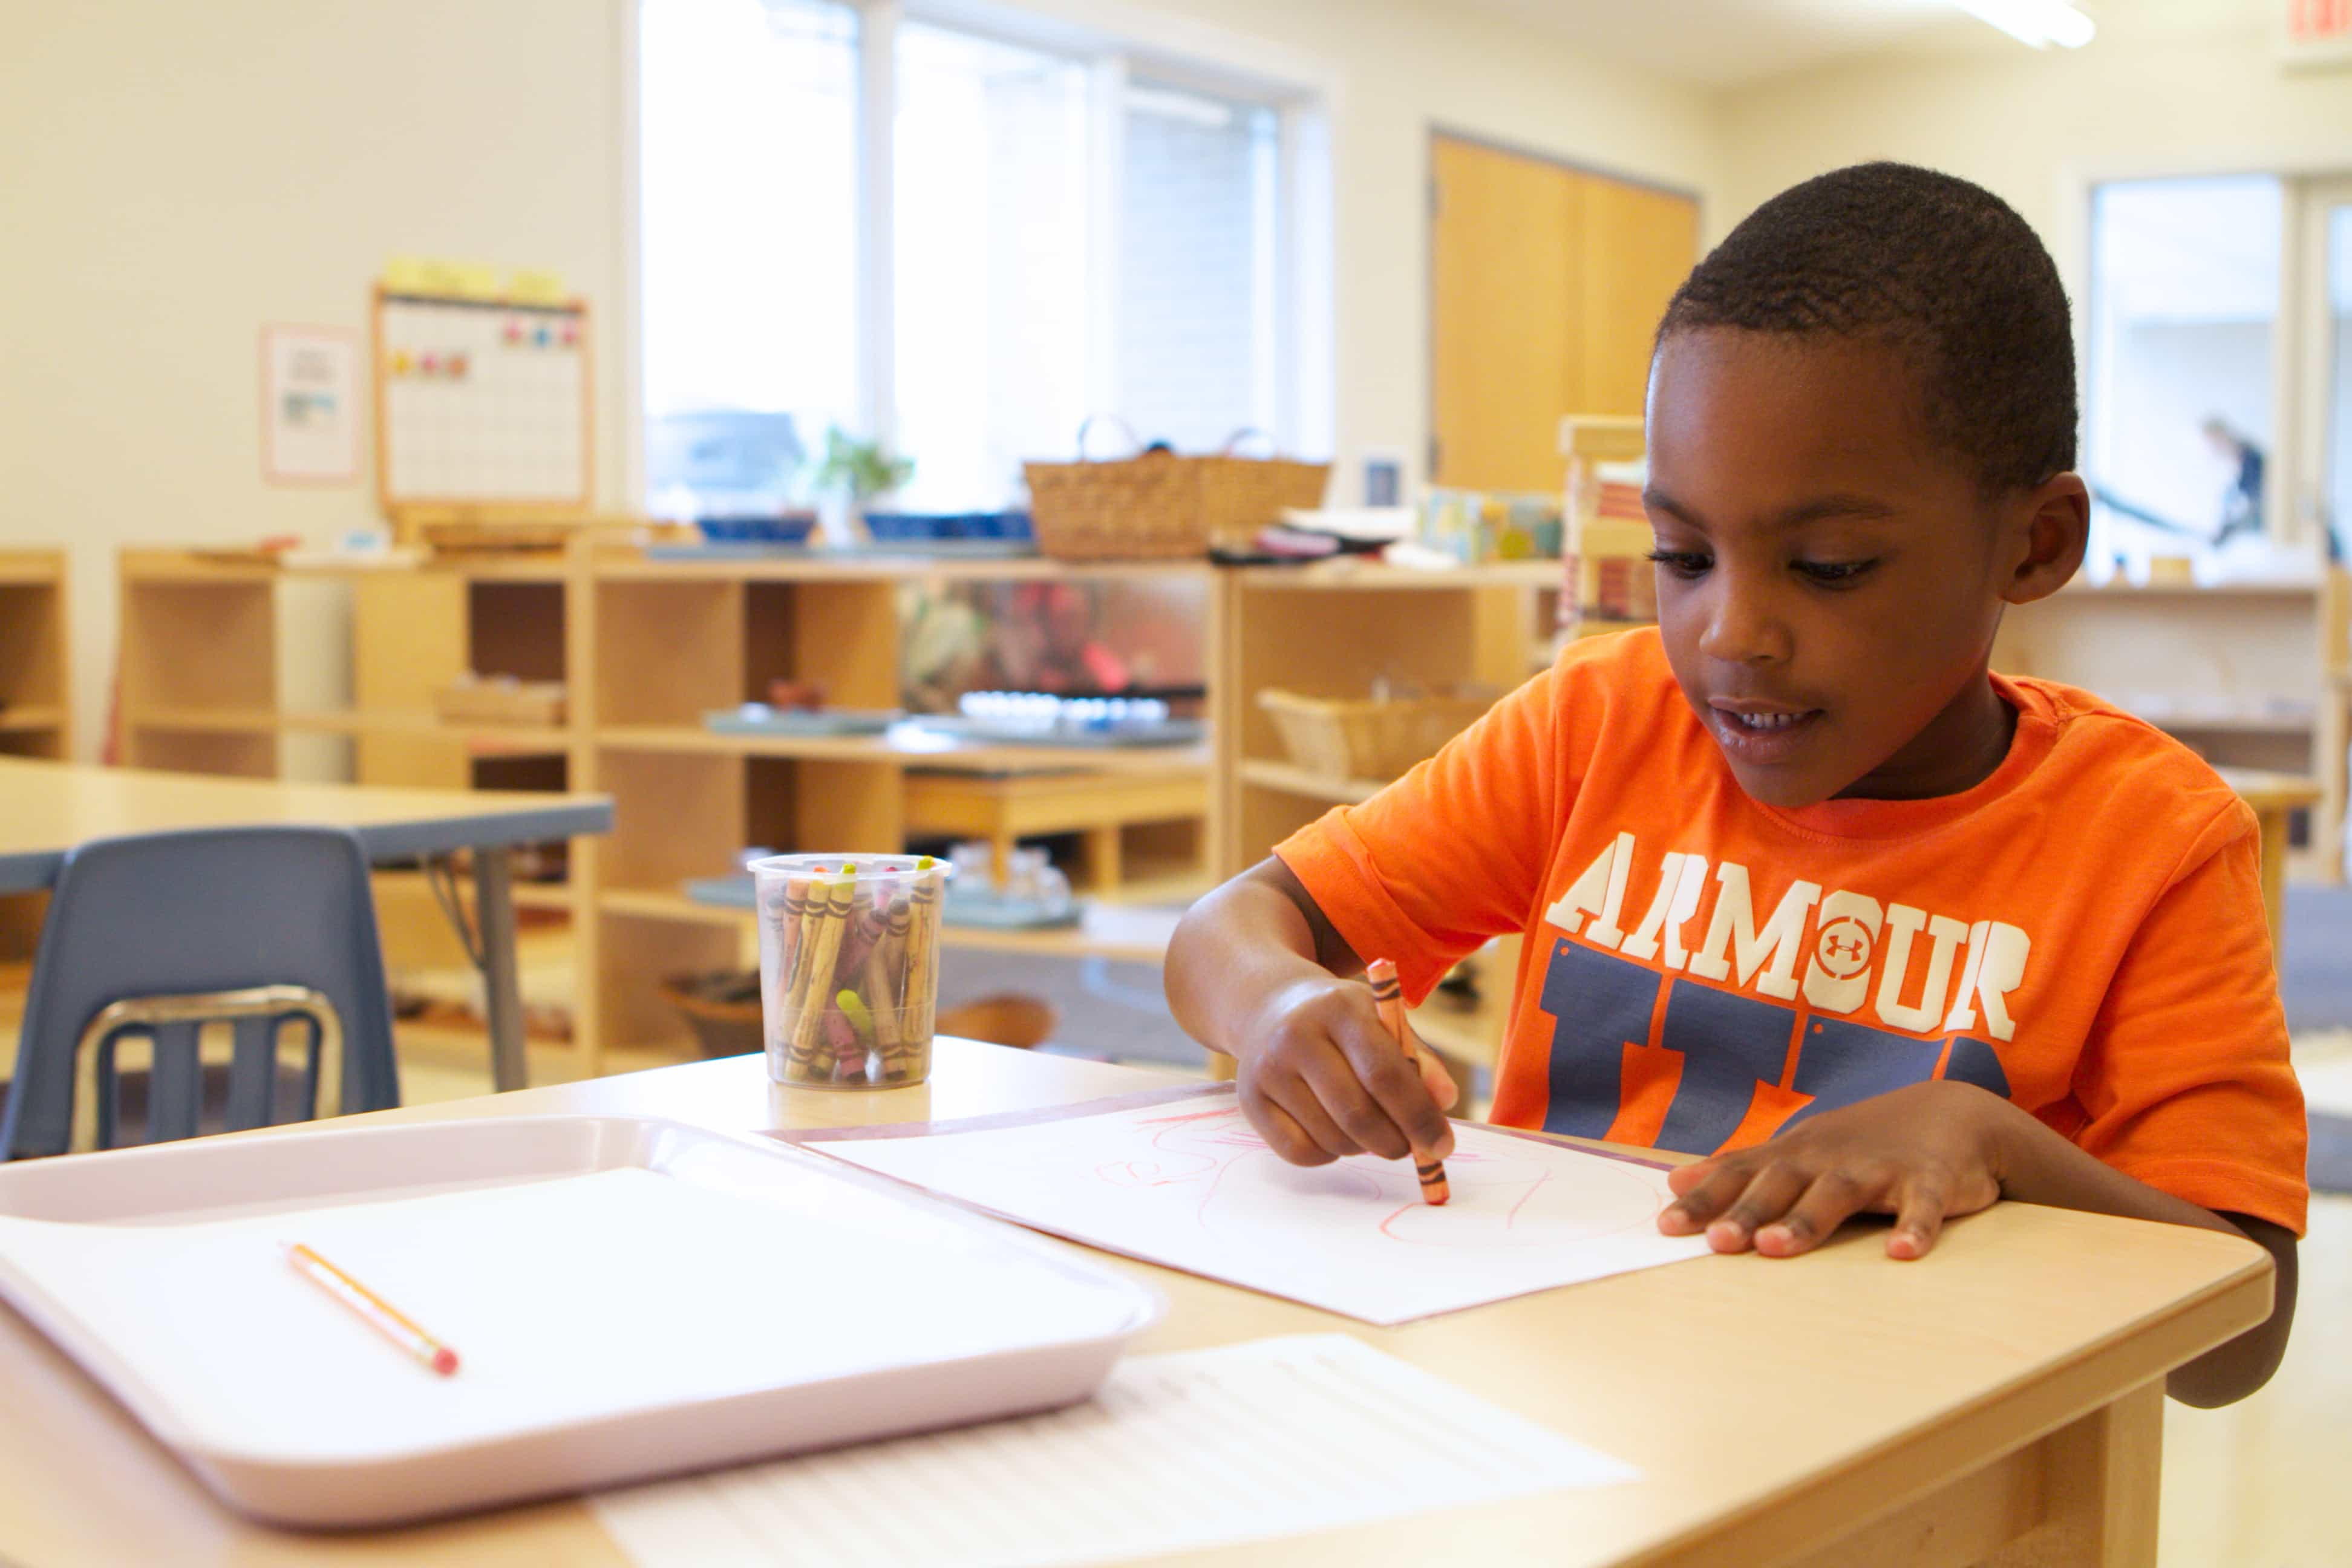 maria montessori essays Montessori montessori education is an educational approach developed by italian physician and educator maria montessori montessori education is practiced in an estimated 20,000 schools worldwide, serving children from birth to eighteen years old.